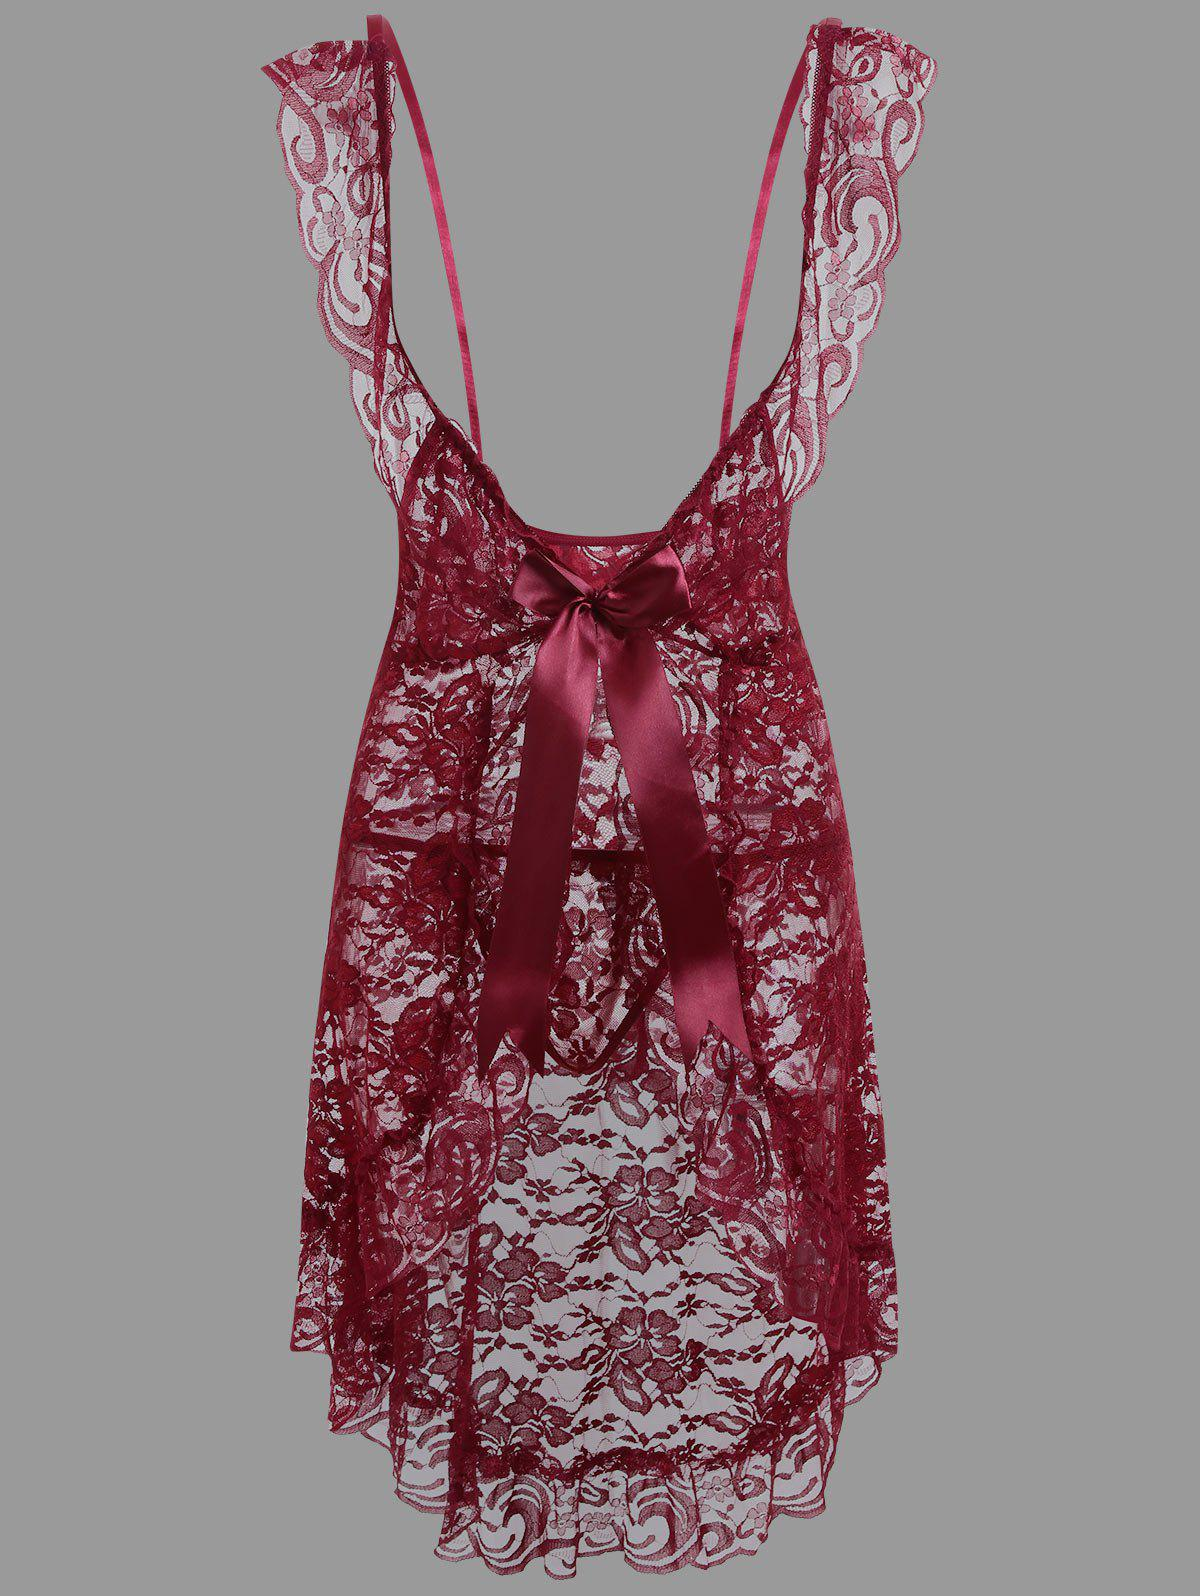 Lace Plunge Ruffles Babydoll - PURPLISH RED C M